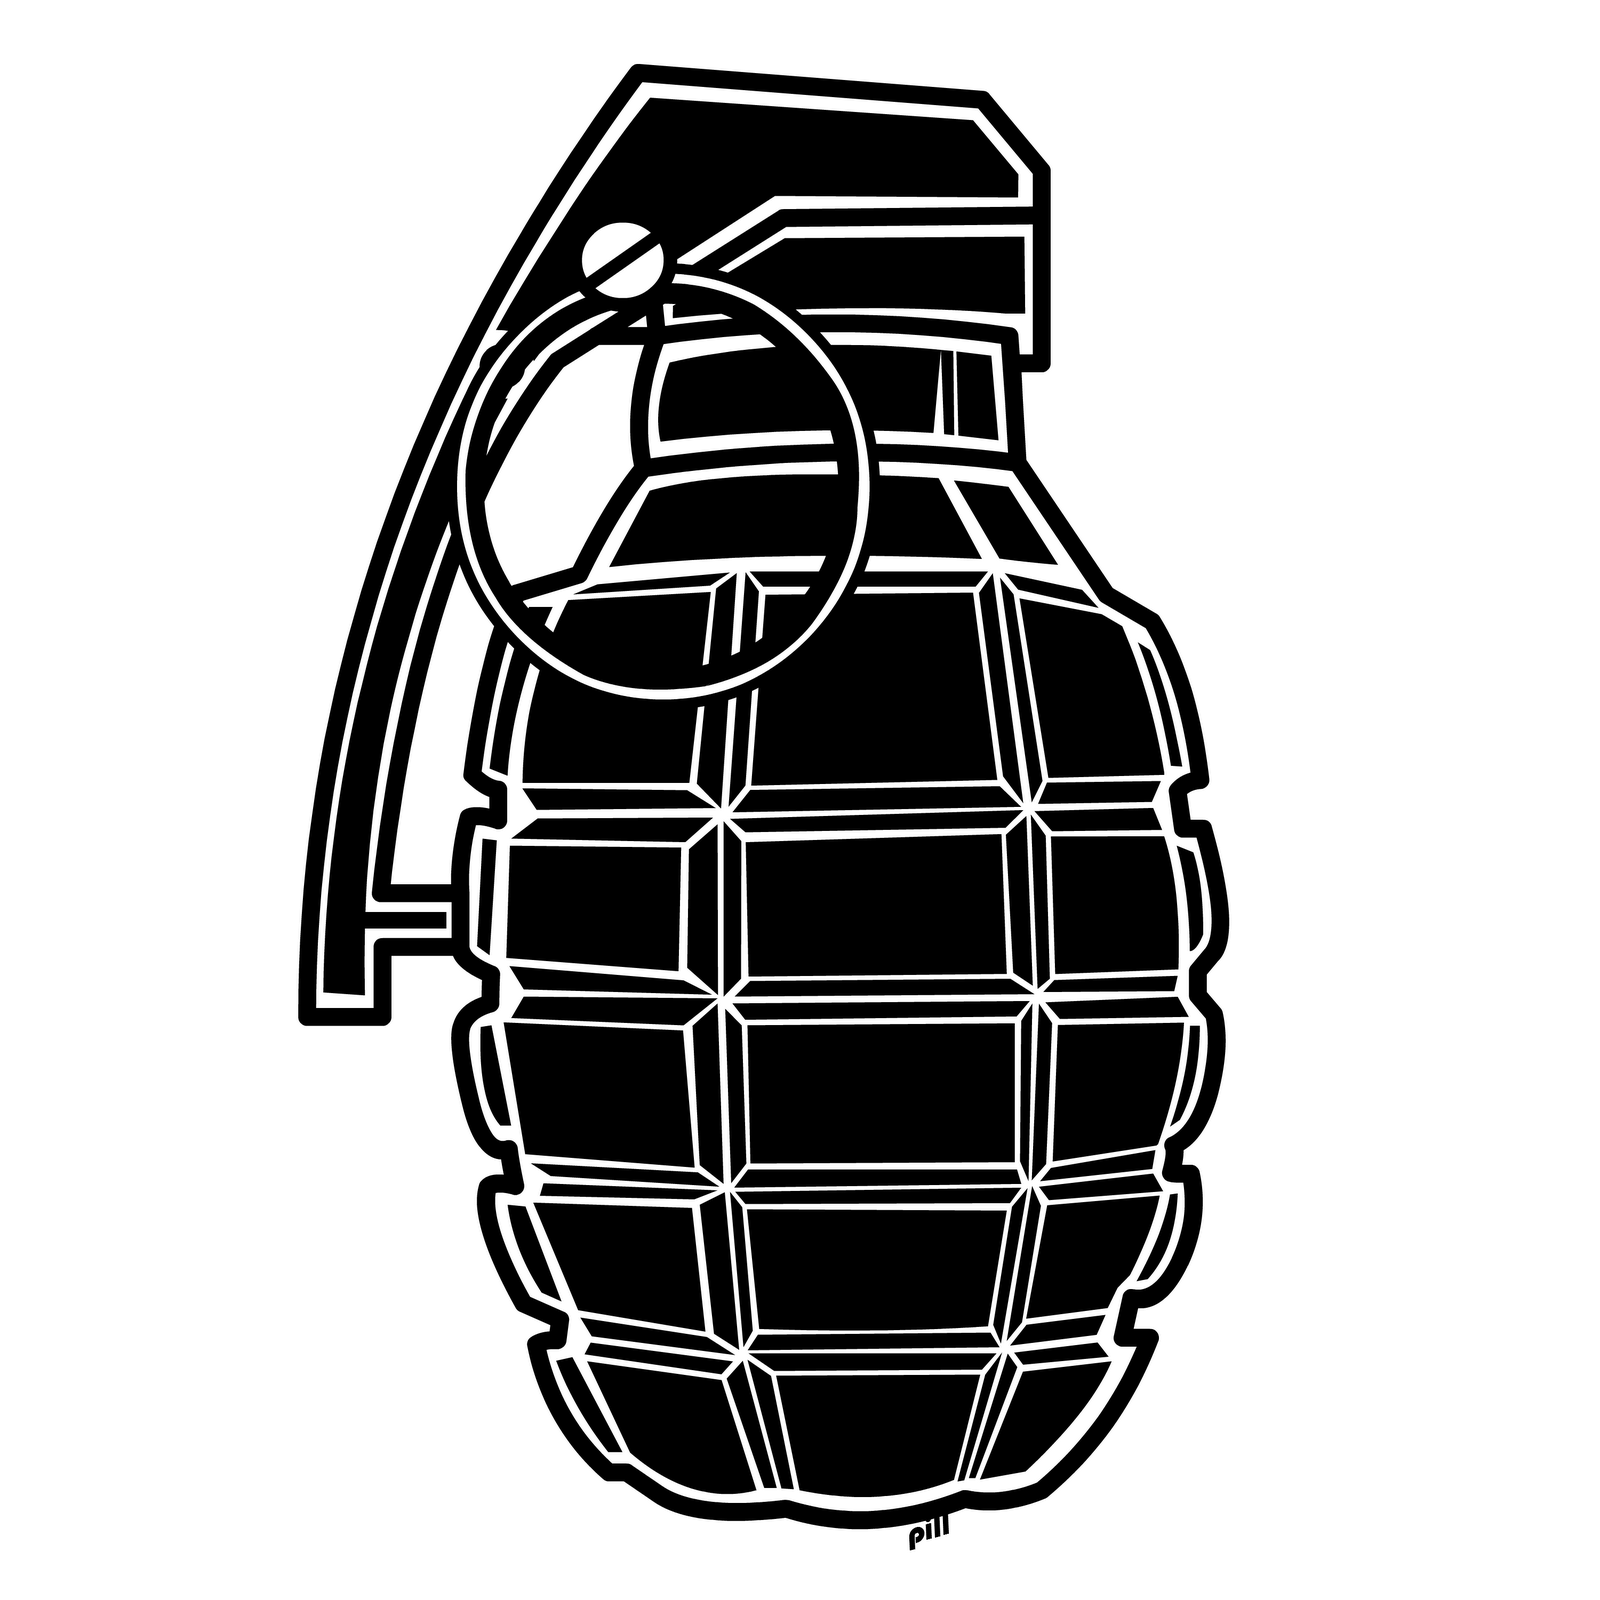 Drawn grenade hand grenade Bubbles Thought Masteri Grenades Clipart